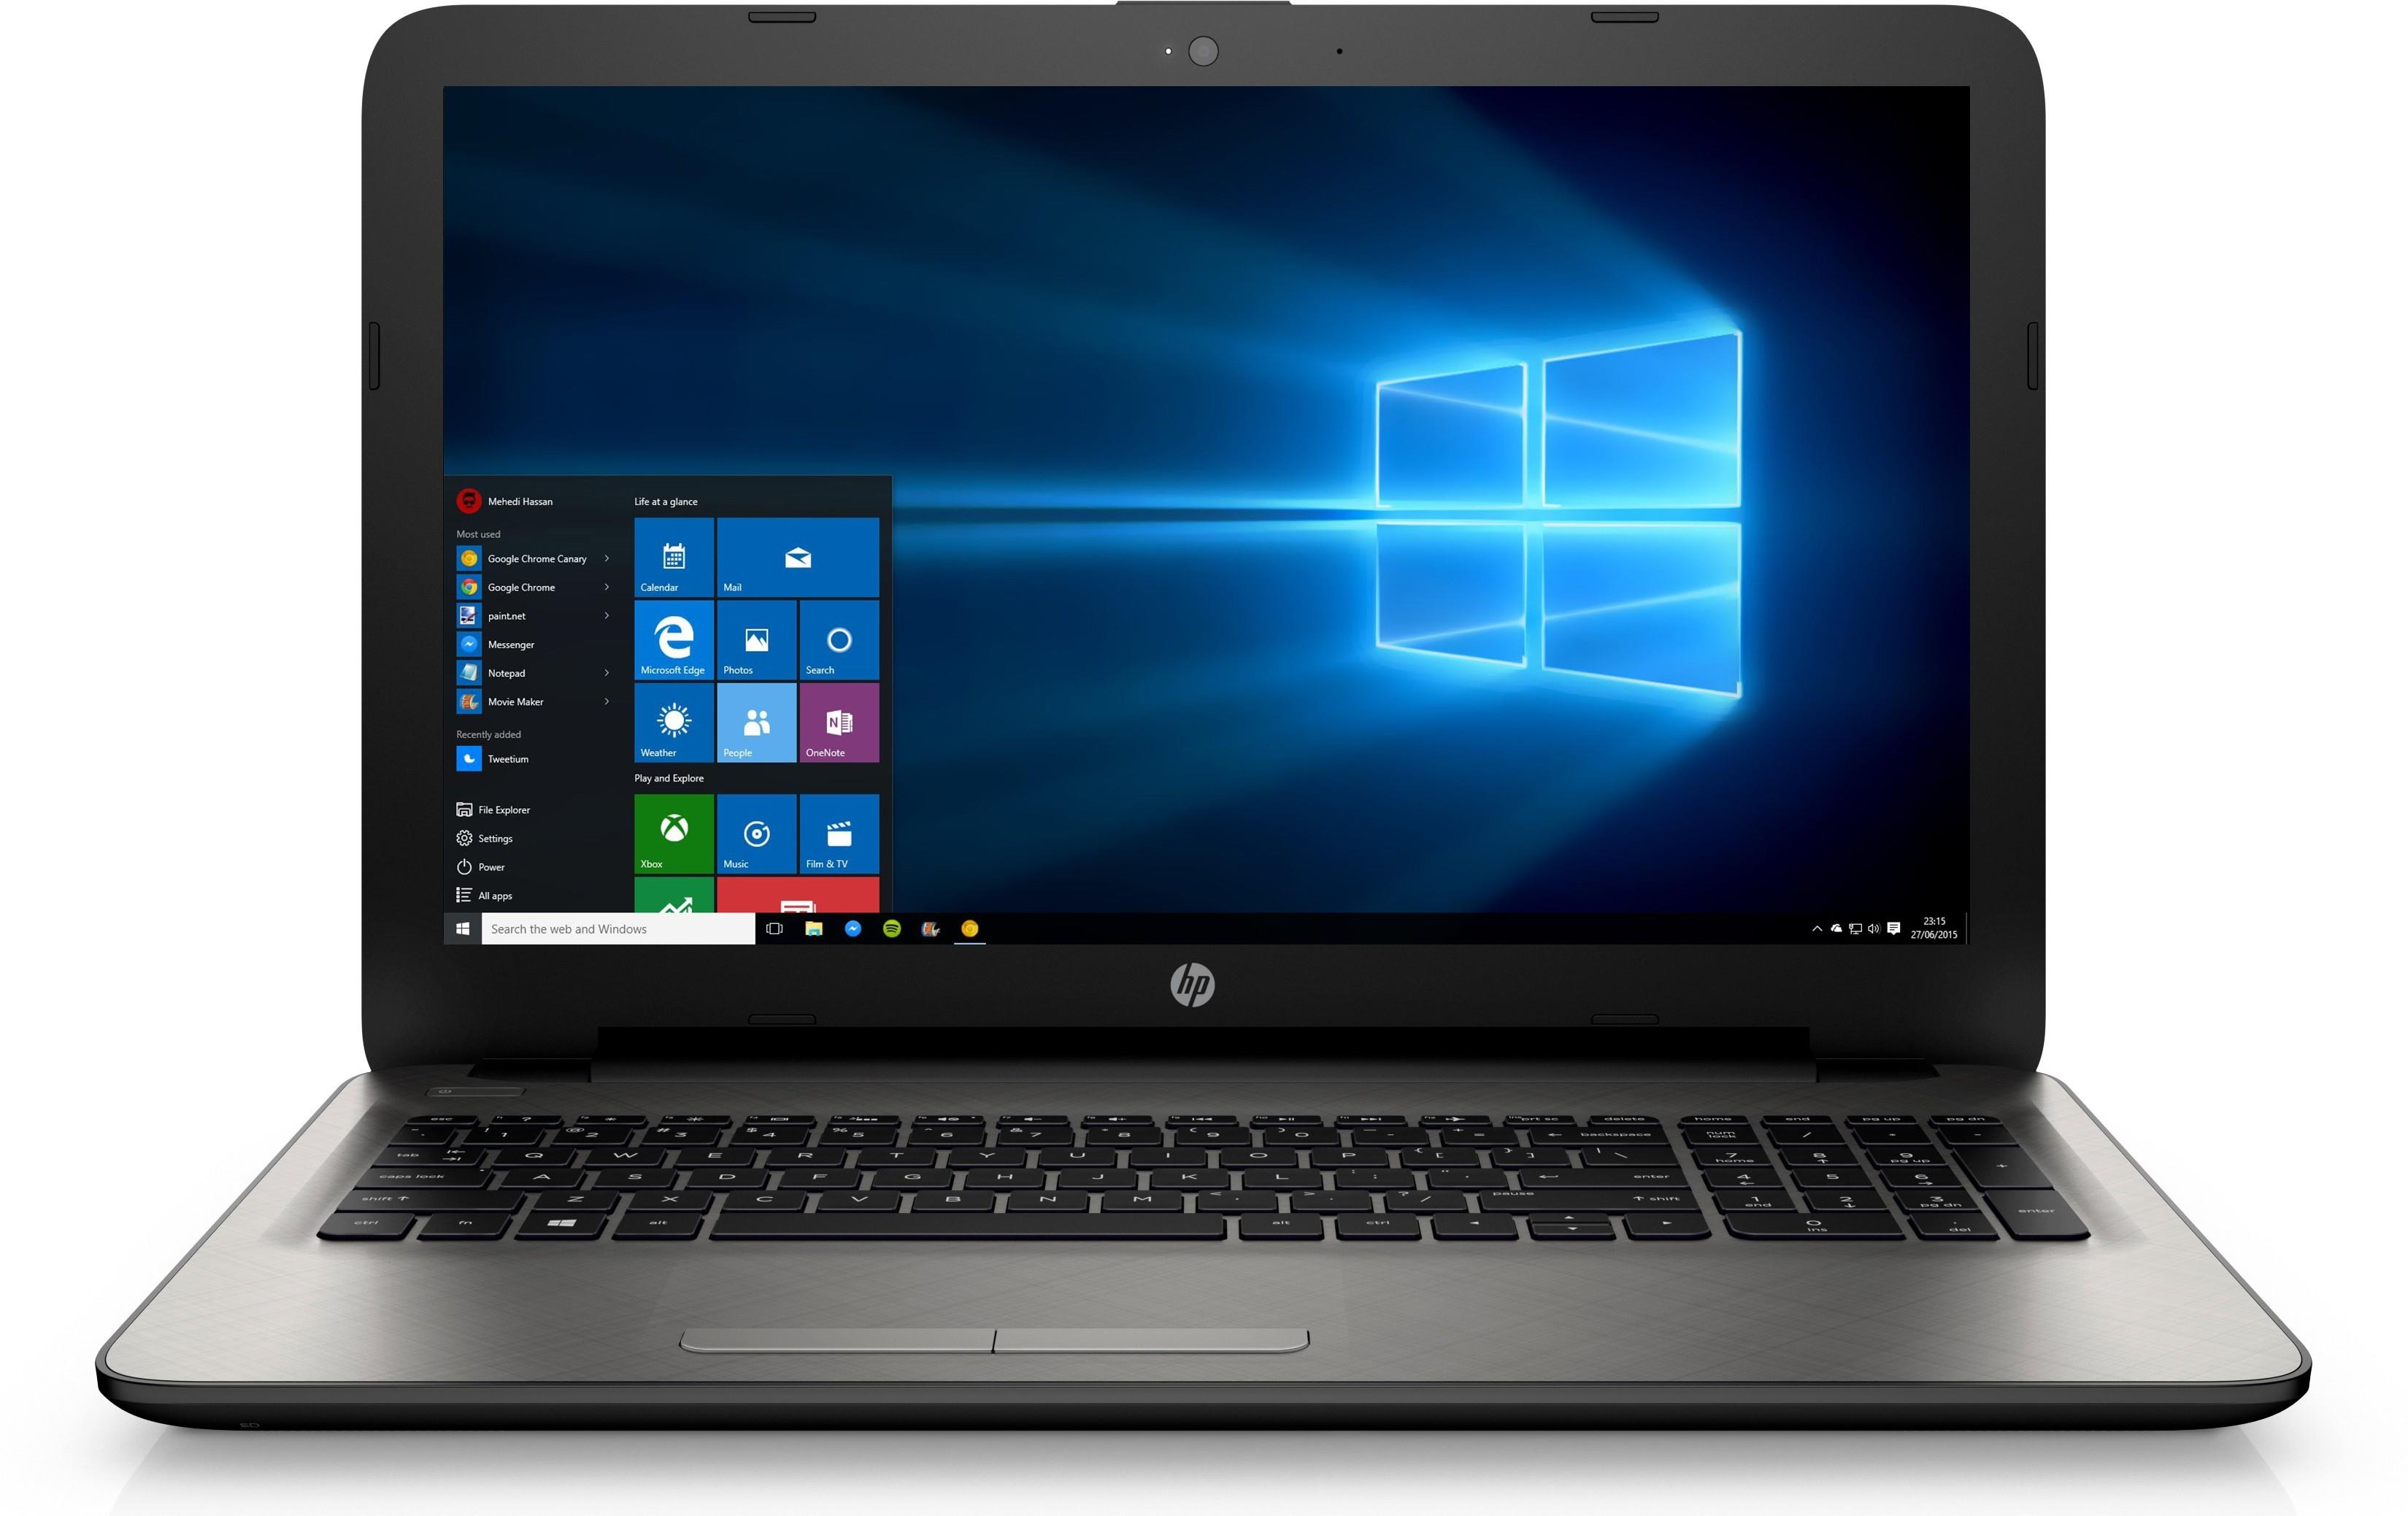 HP 15 ac126TX Notebook (N8M31PA) Image